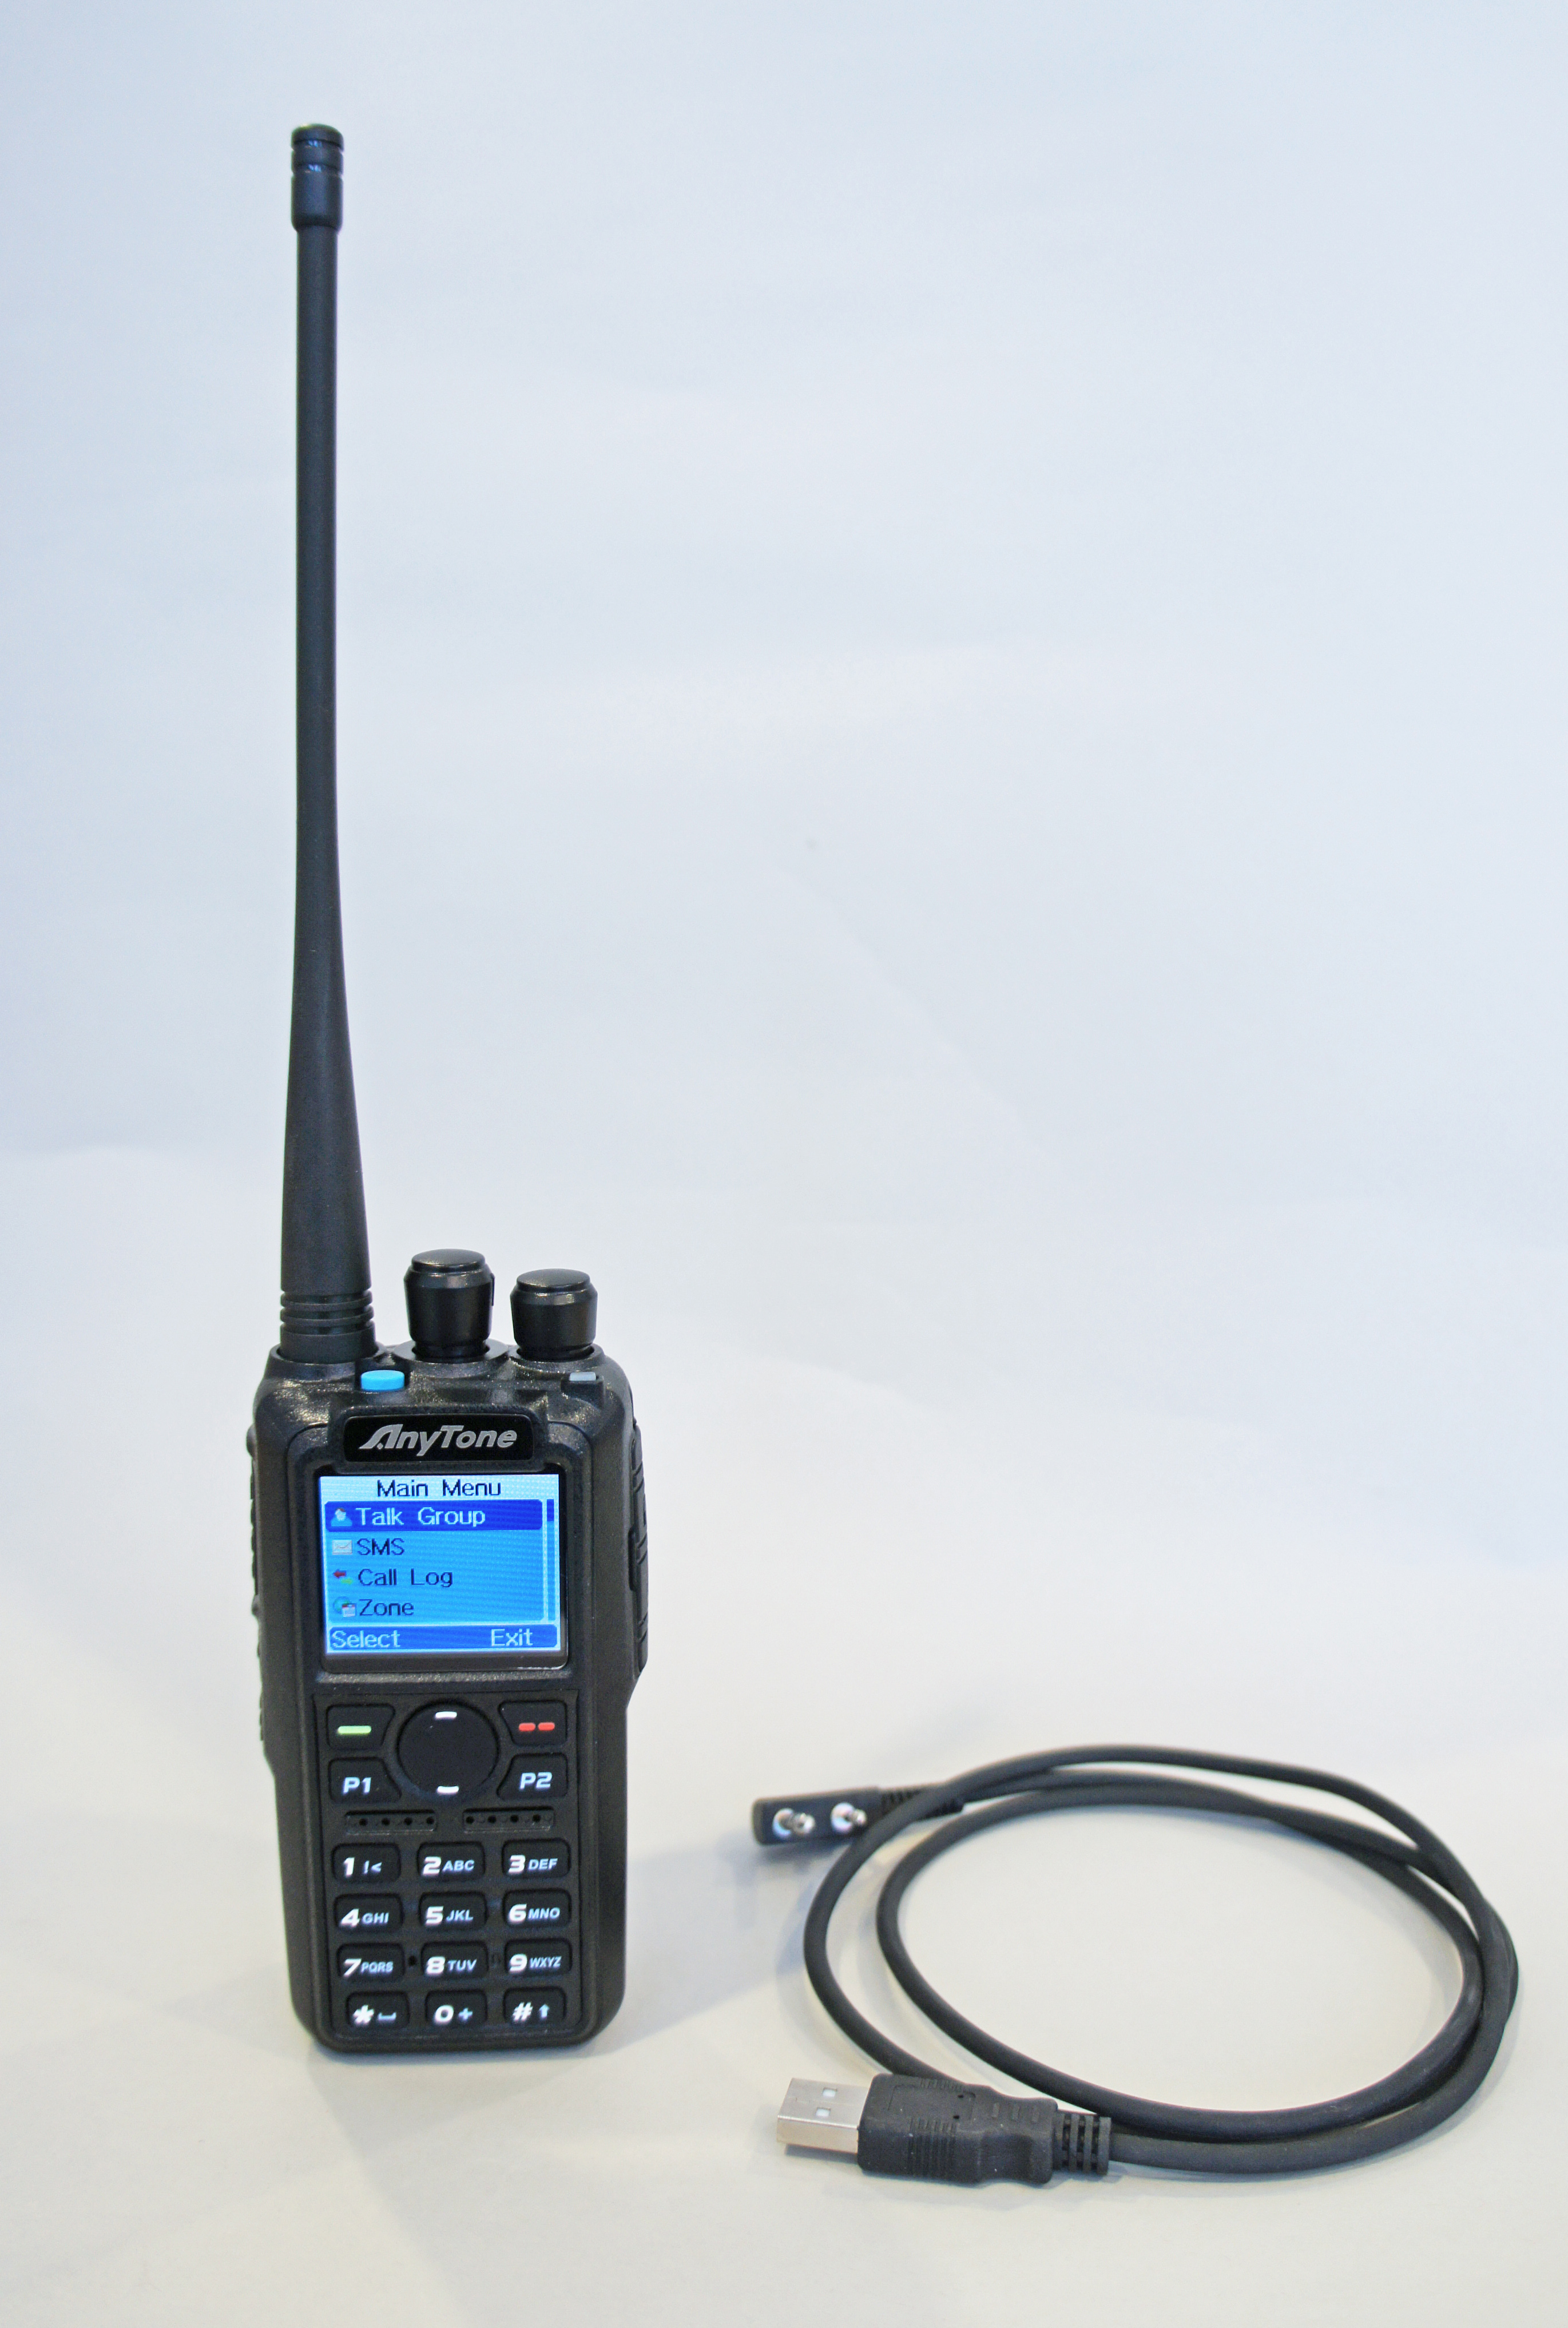 Anytone 578 Dmr Mobile